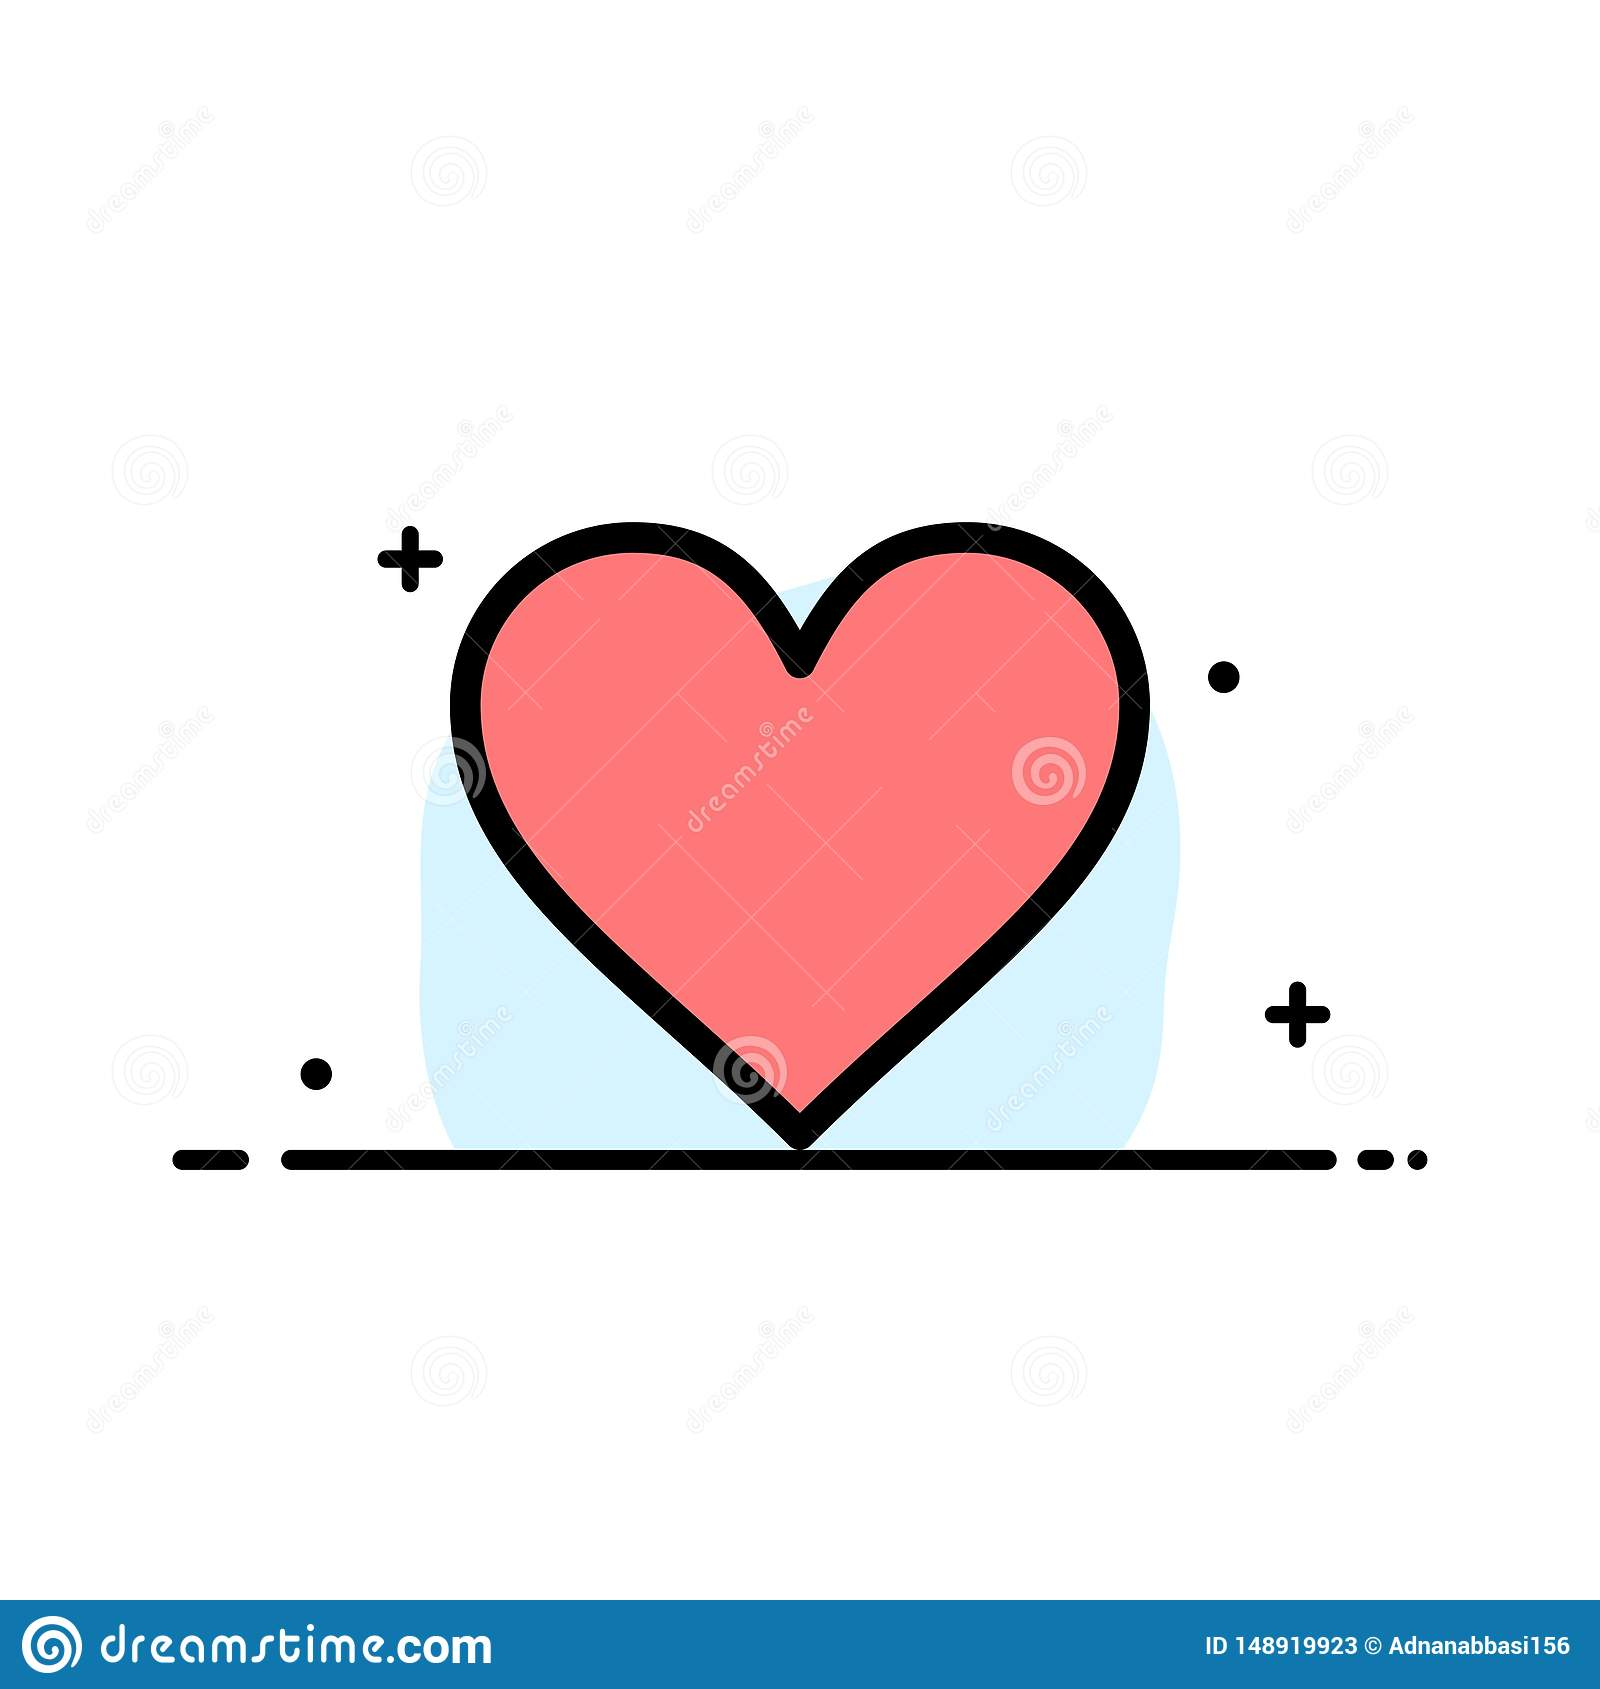 Love Instagram Interface Like Business Flat Line Filled Icon Vector Banner Template Stock Vector Illustration Of Symbol Online 148919923